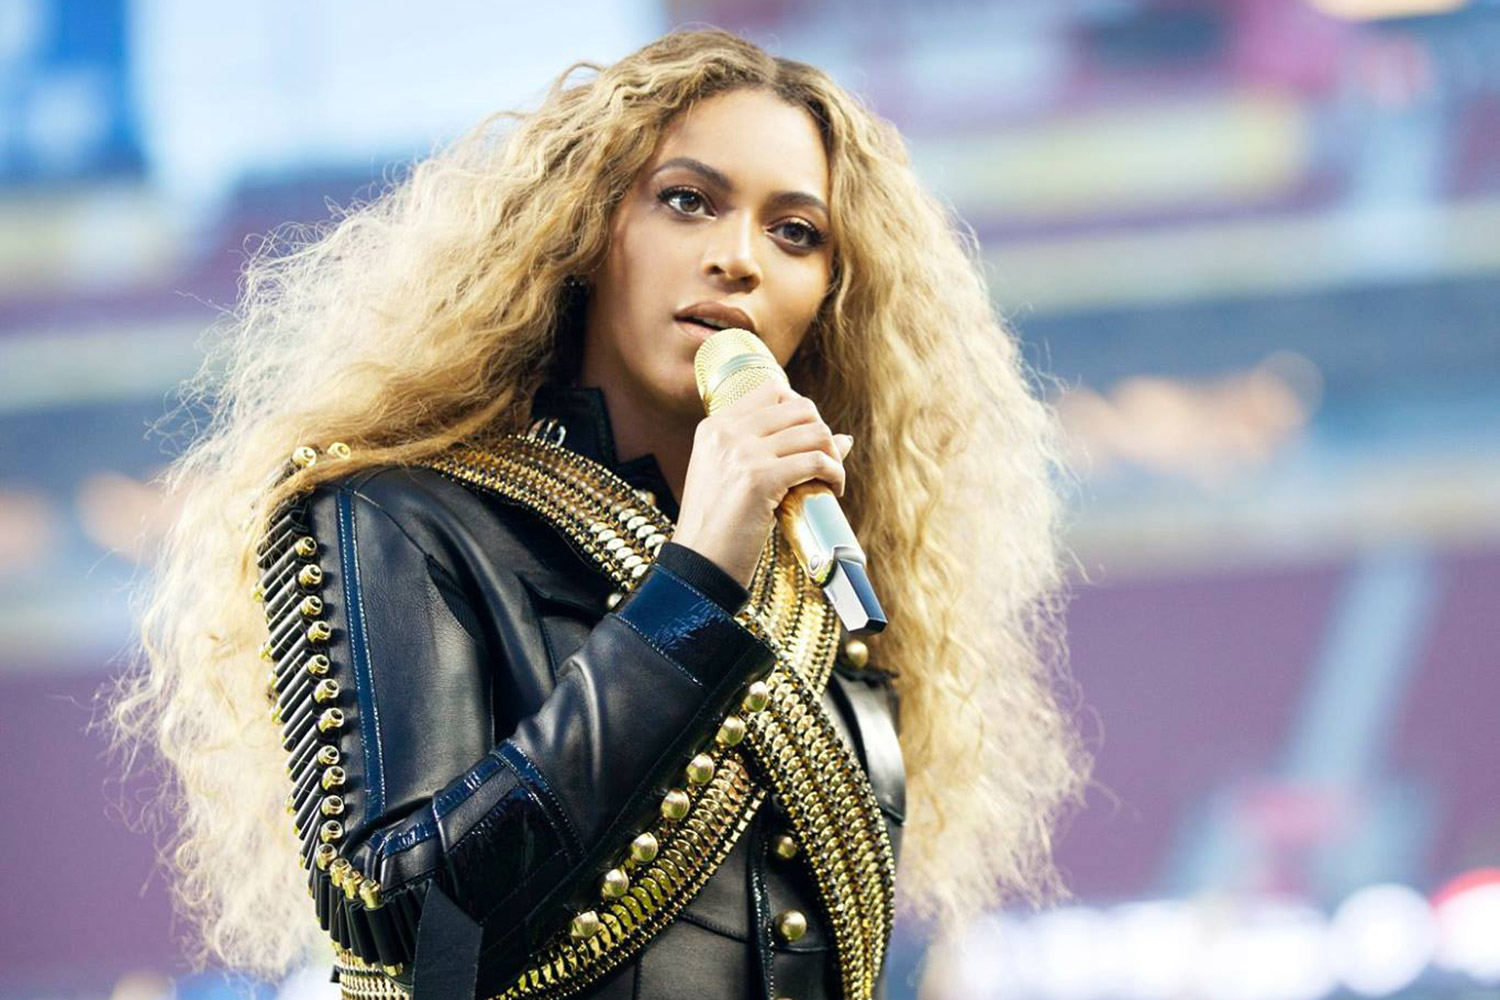 Beyonce has invested $150,000 into the music industry startup Sidestep.